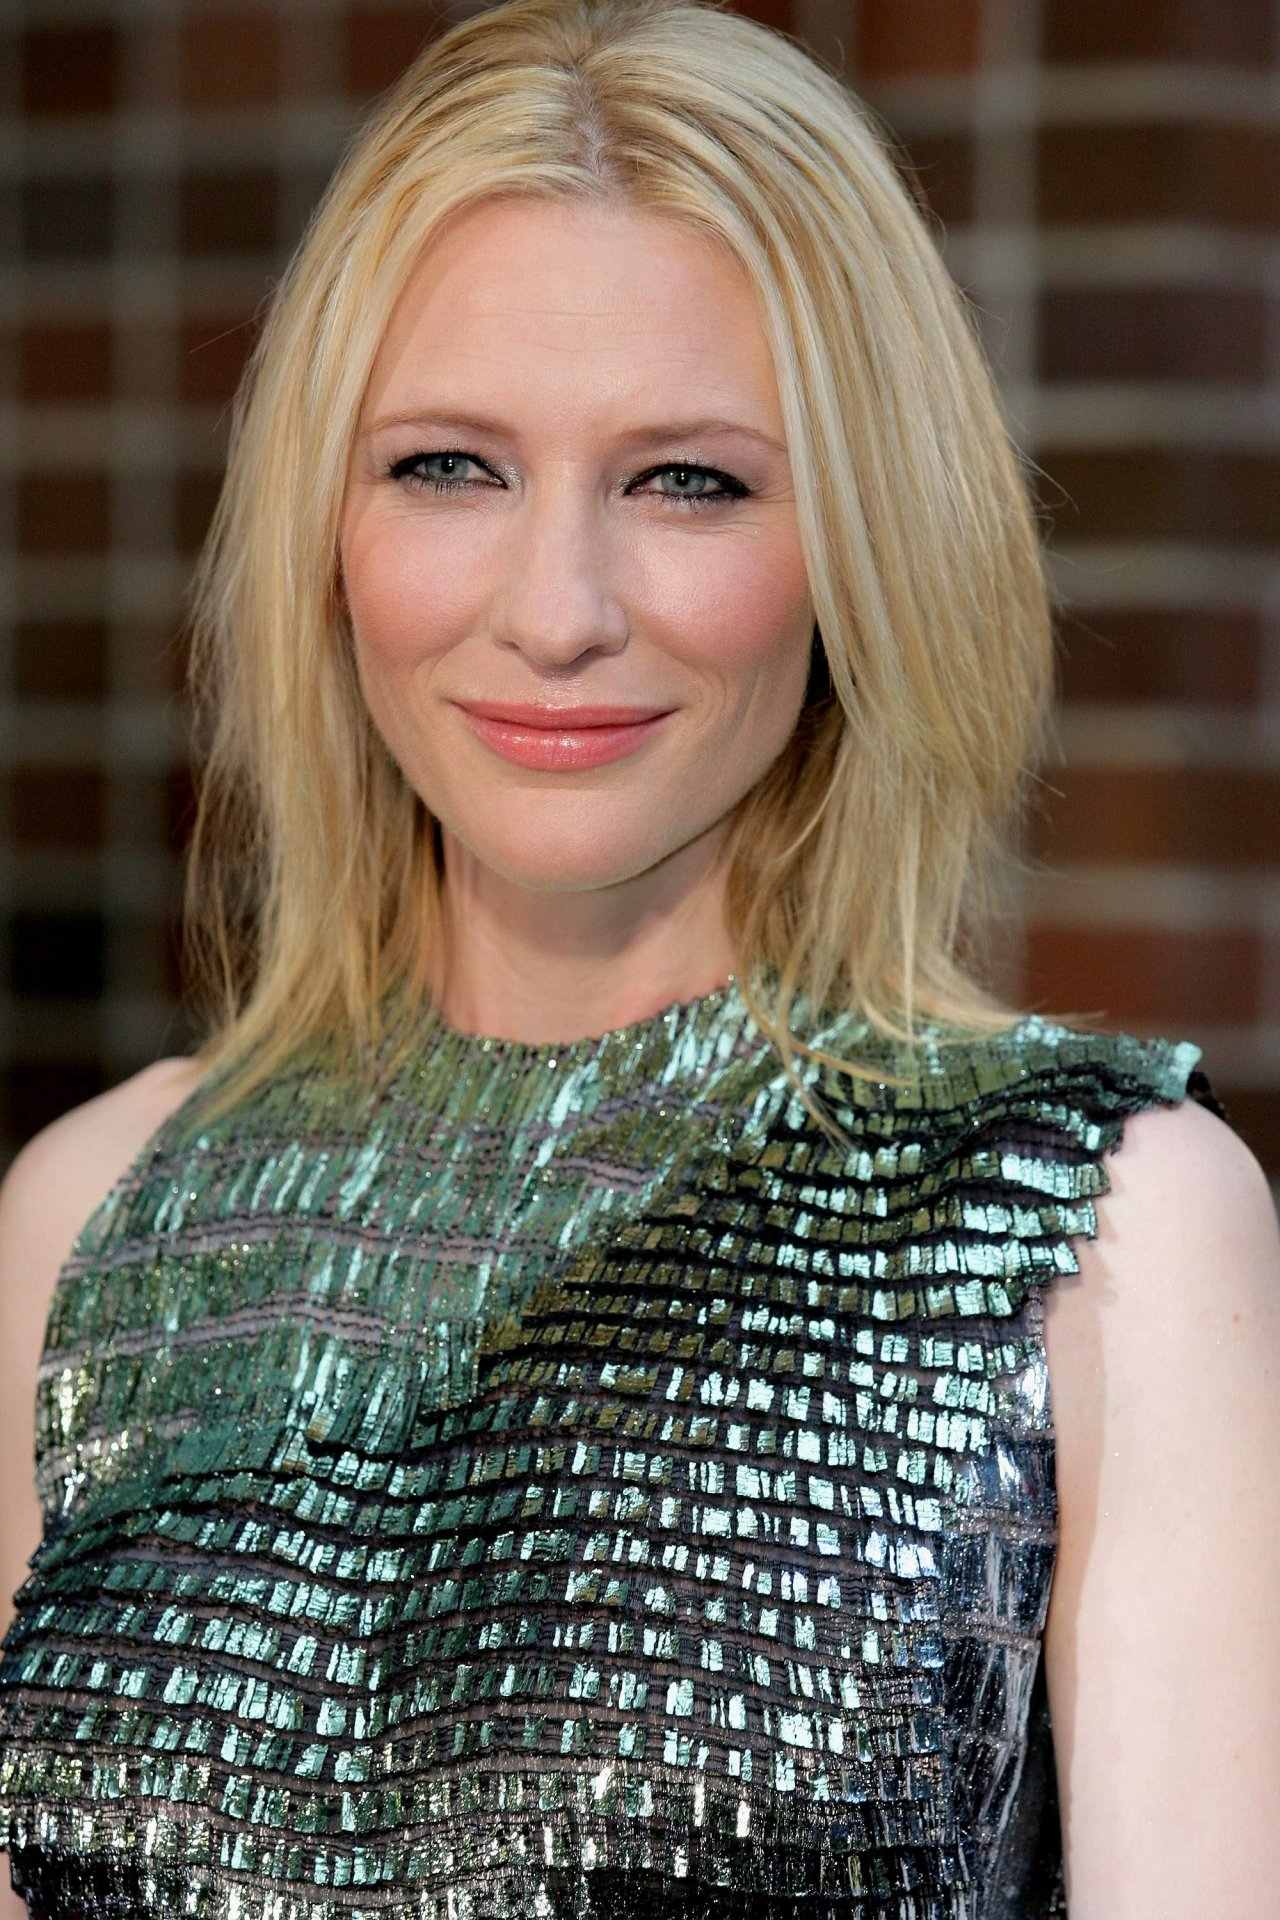 Cate Blanchett leaked wallpapers